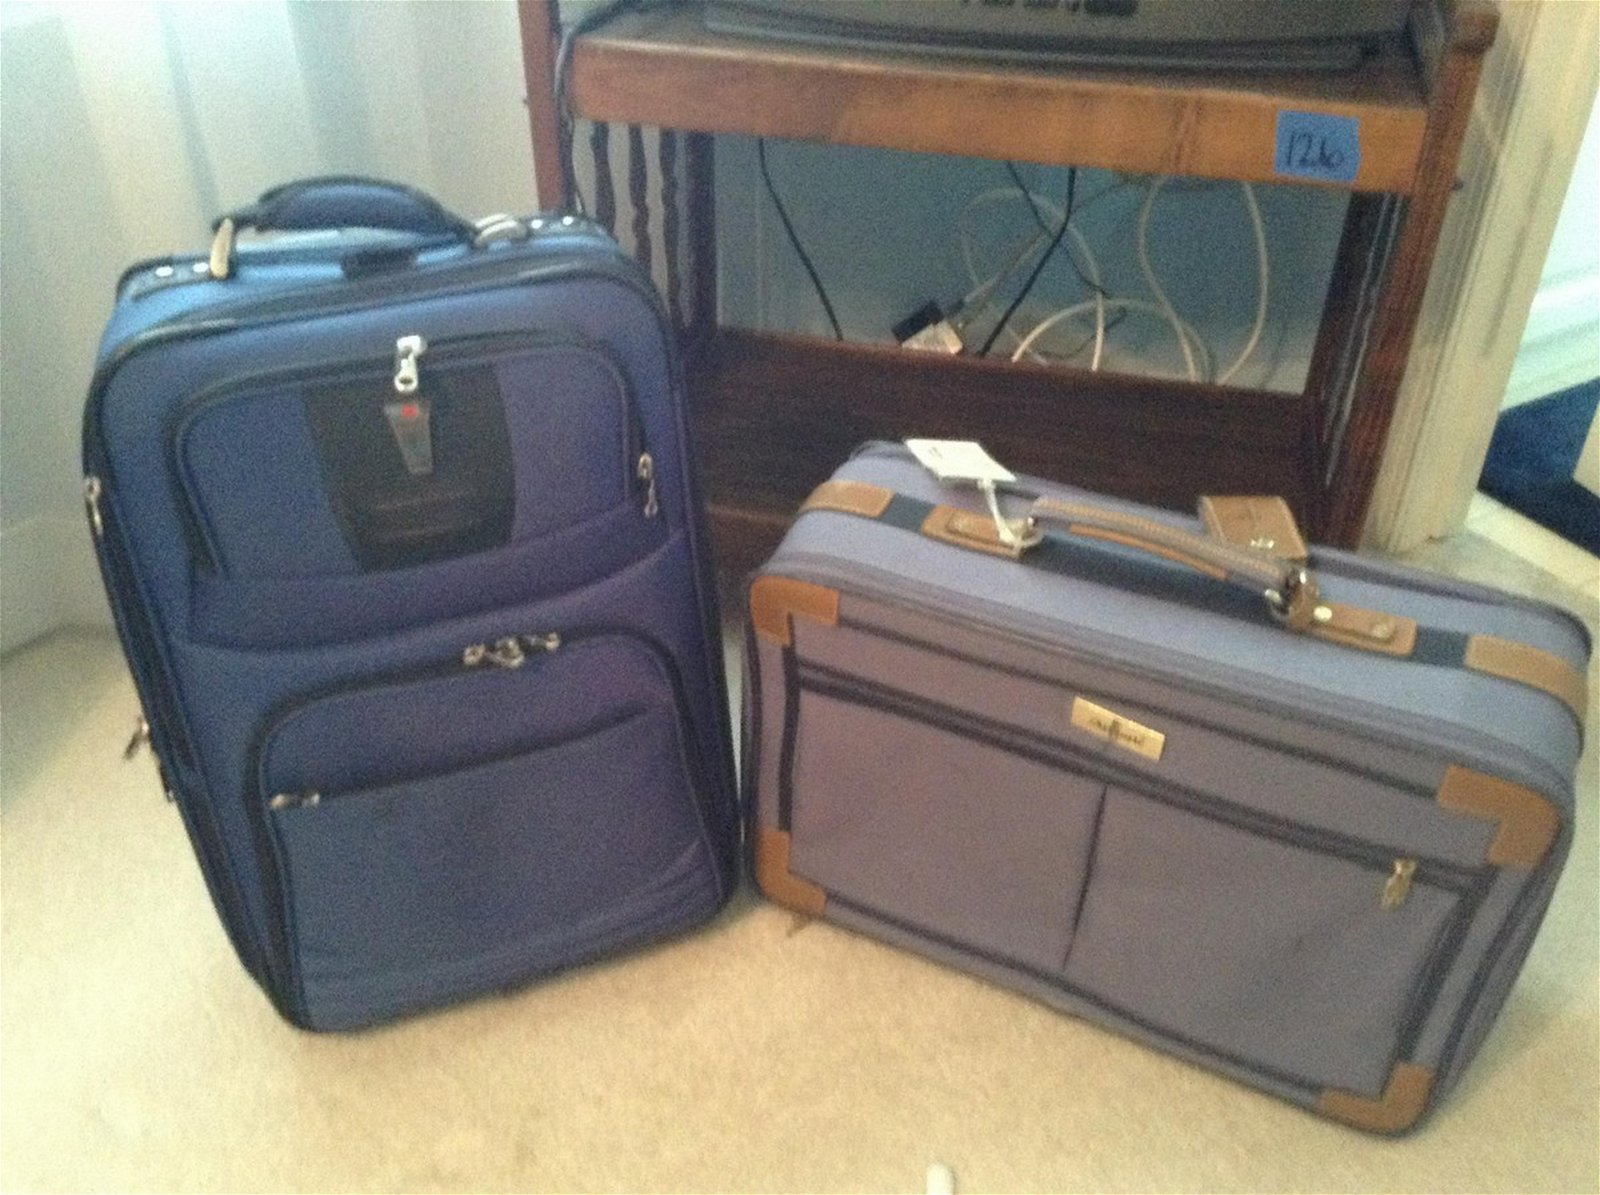 Delsey and Atlantic vintage suitcases